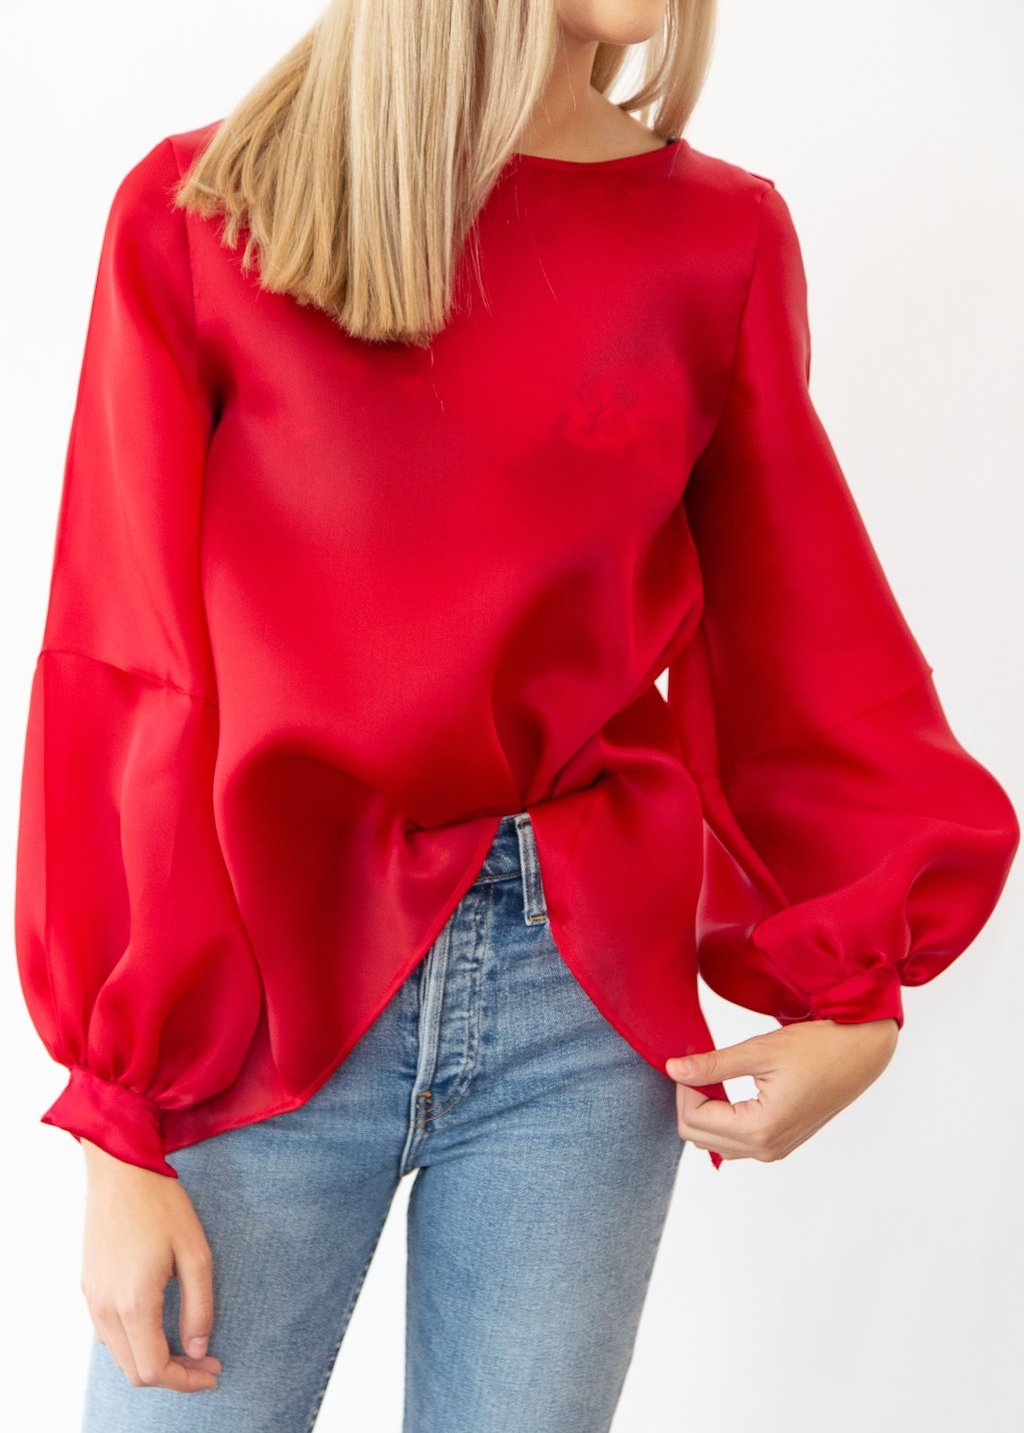 ELIZABETH Organza Stripe Sleeve Top in Red - Shop Tula